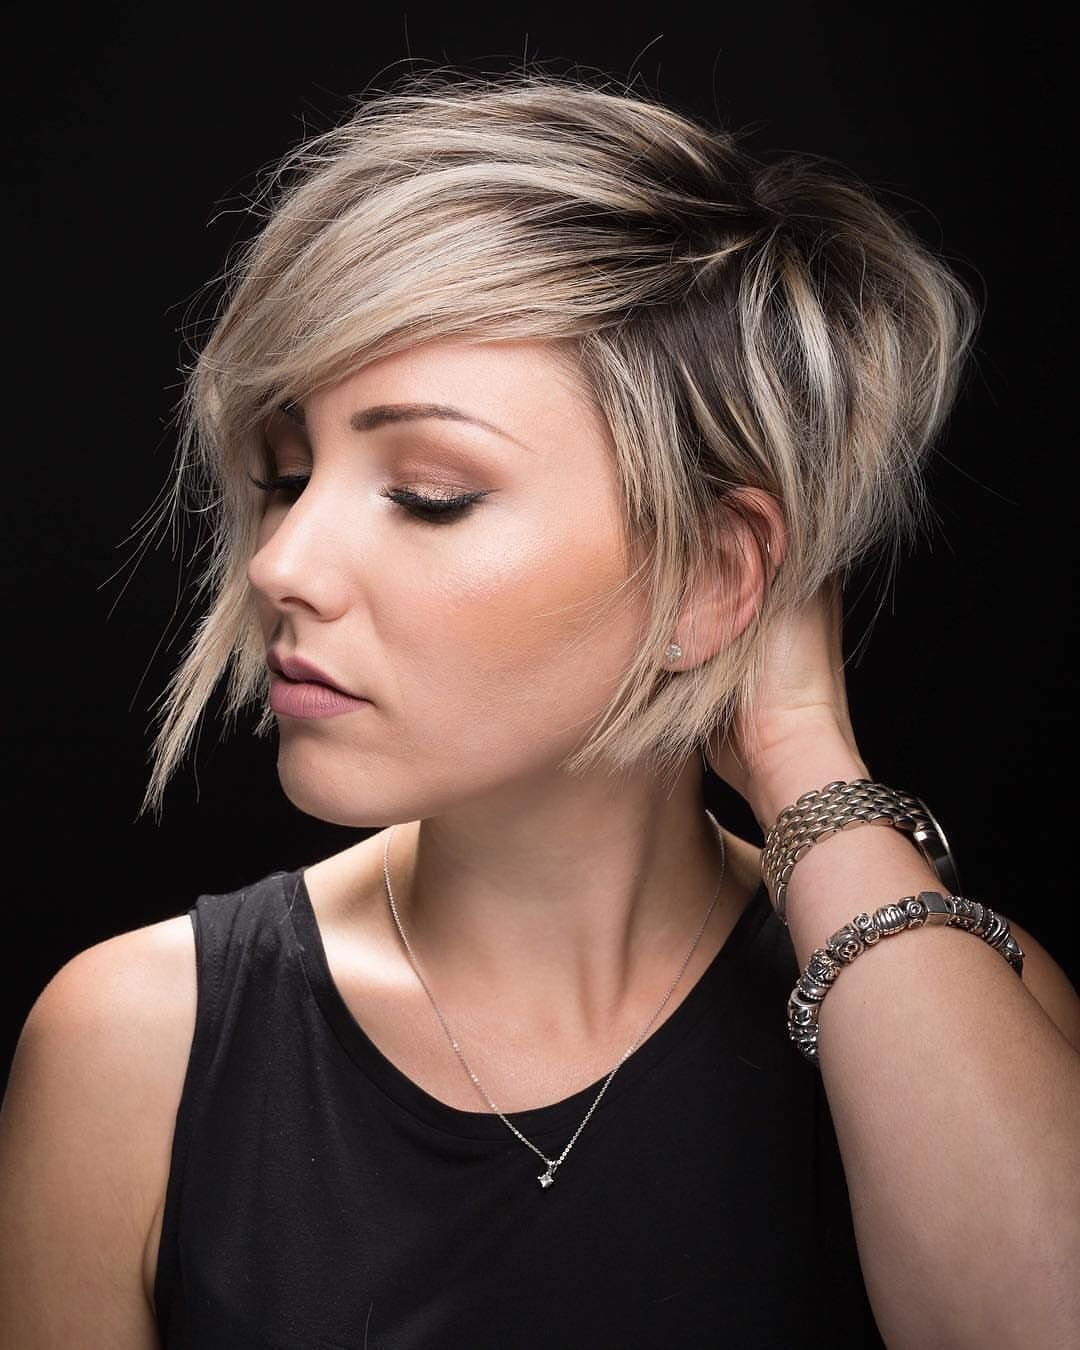 New 20 Modern Sh*G Hairstyles Every Cool Girl Needs To Try Ideas With Pictures